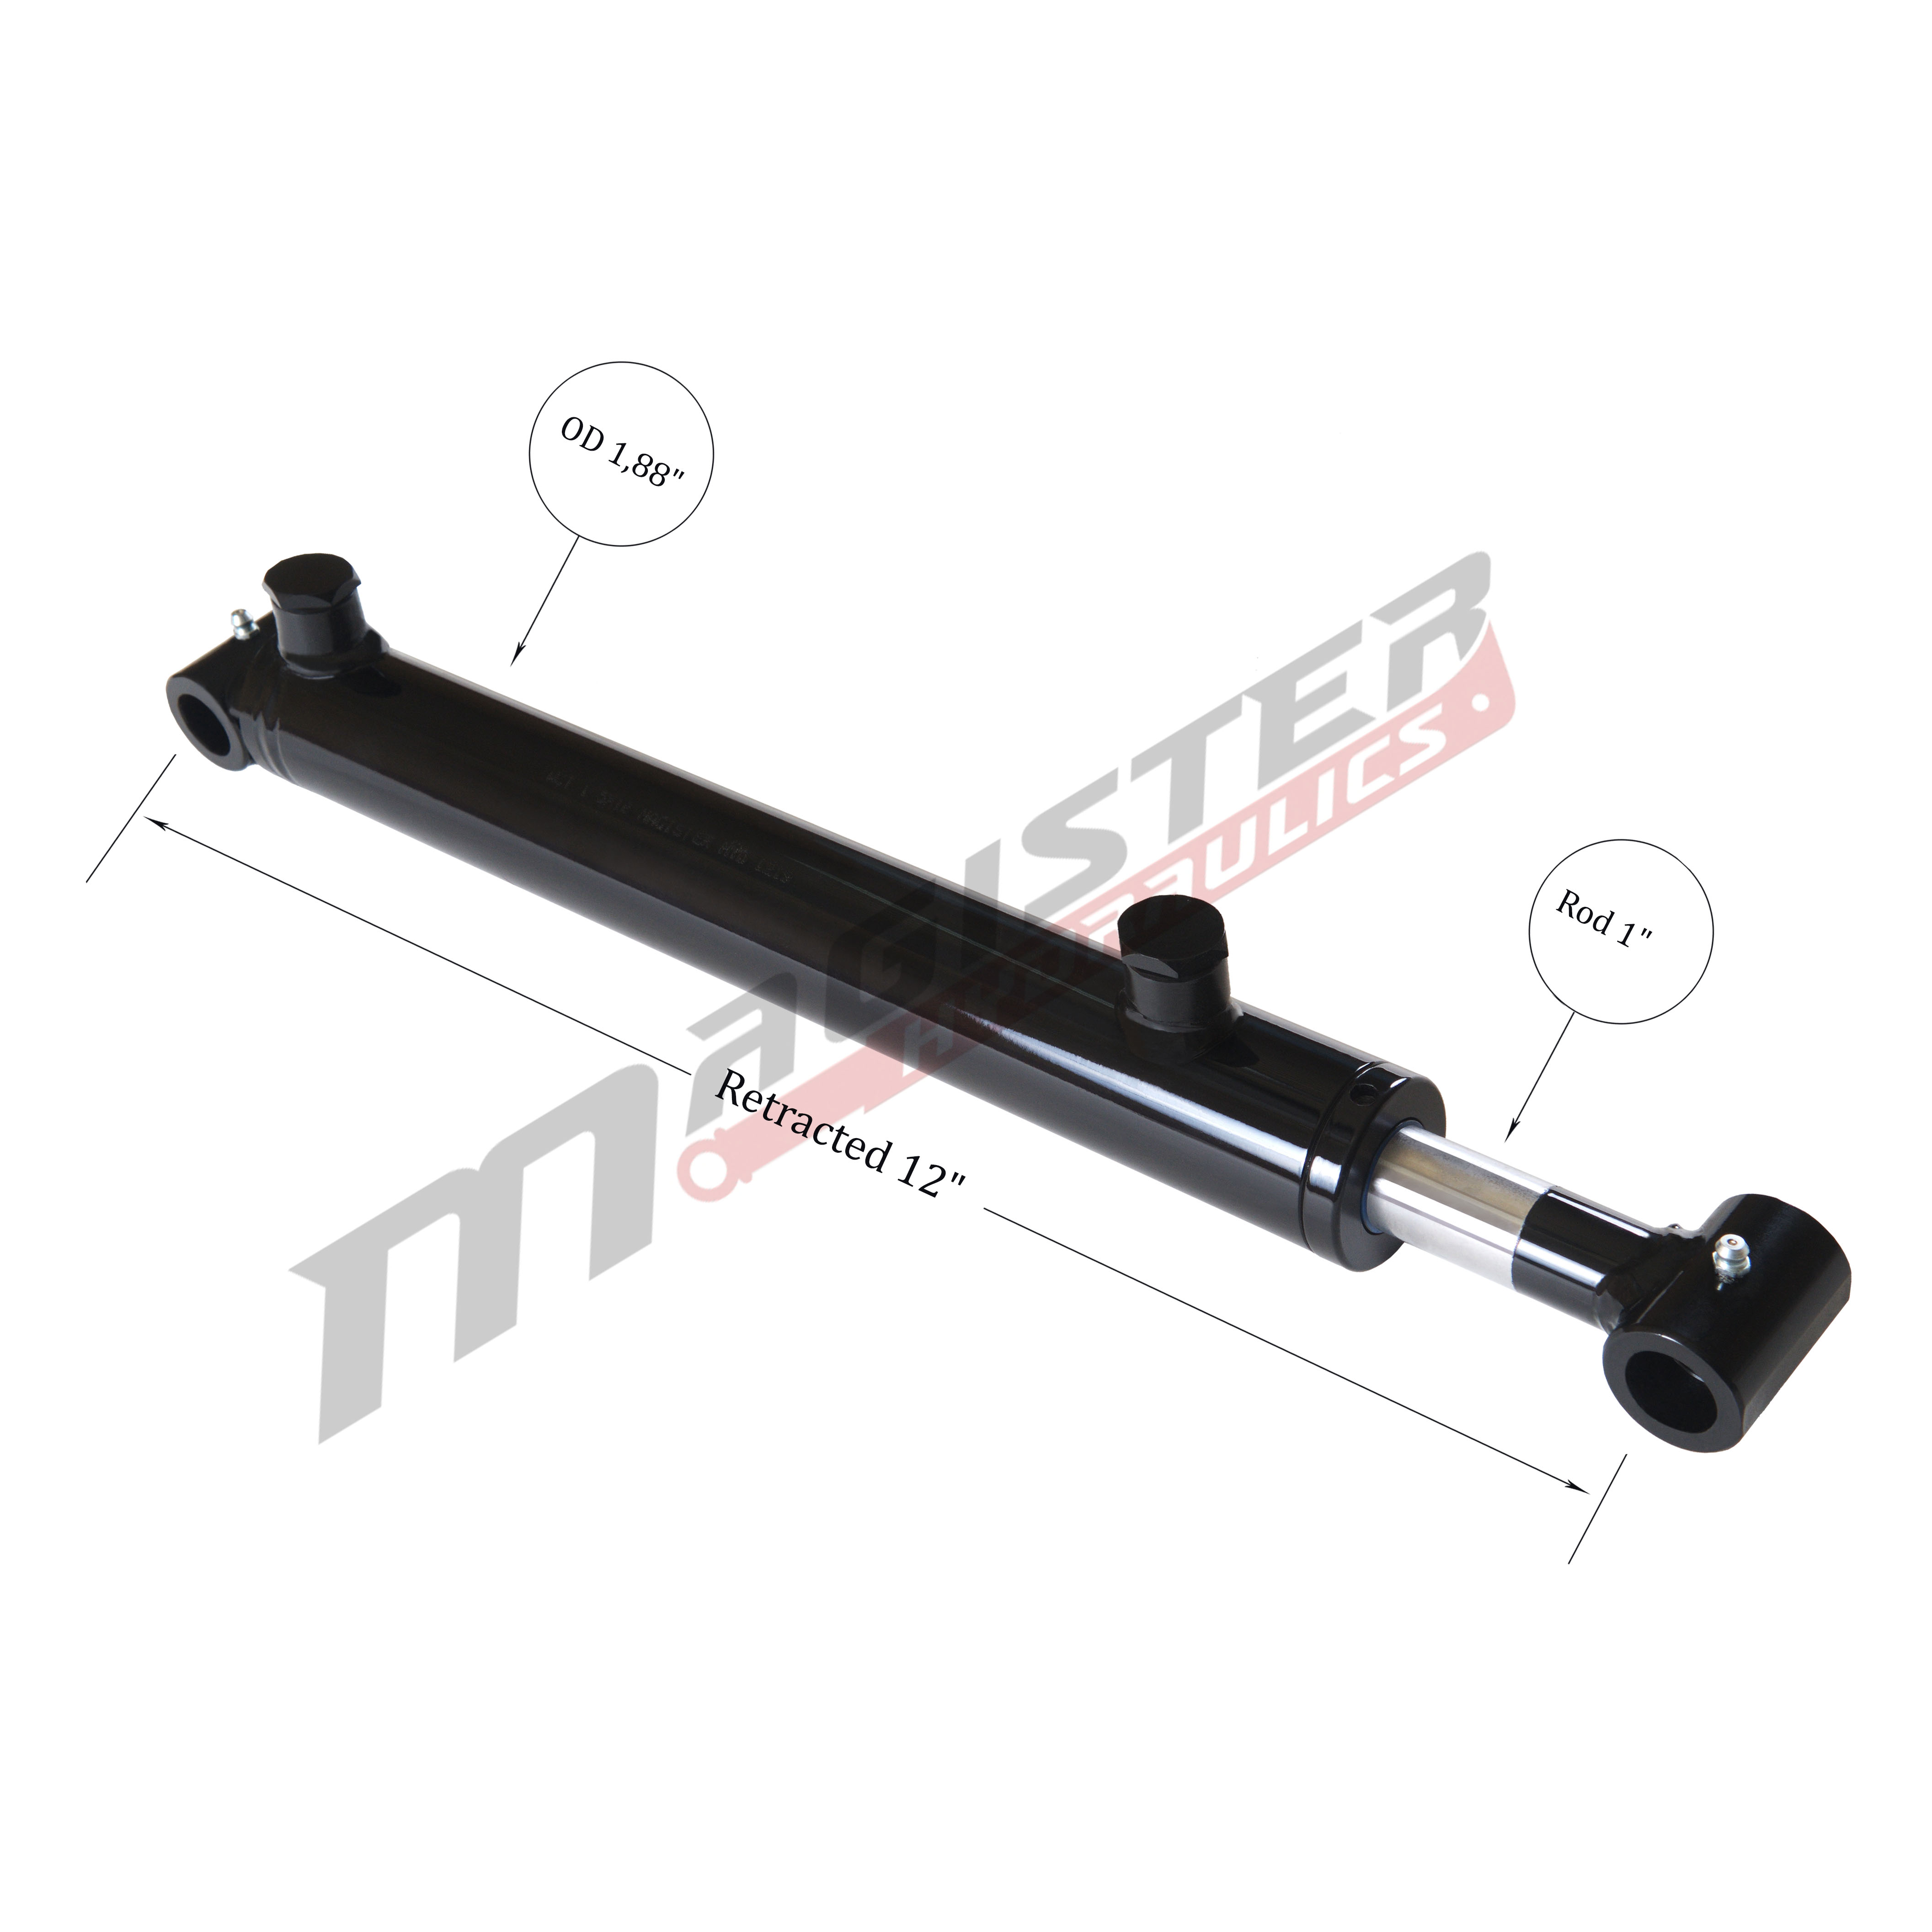 1.5 bore x 4 stroke hydraulic cylinder, welded cross tube double acting cylinder | Magister Hydraulics